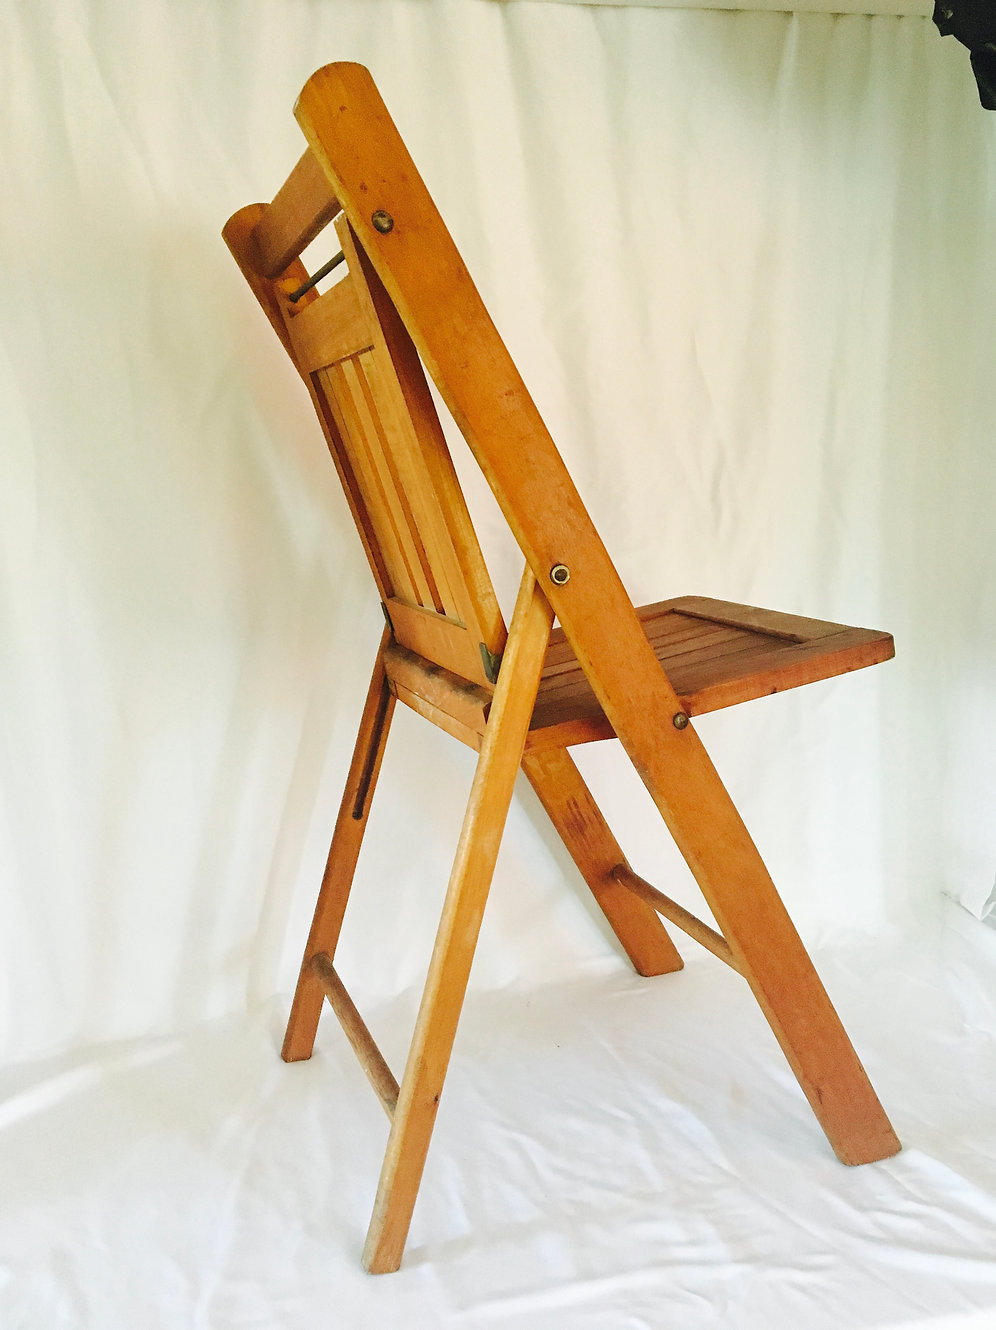 Vintage The Standard Mfg Co Wood Folding Chair